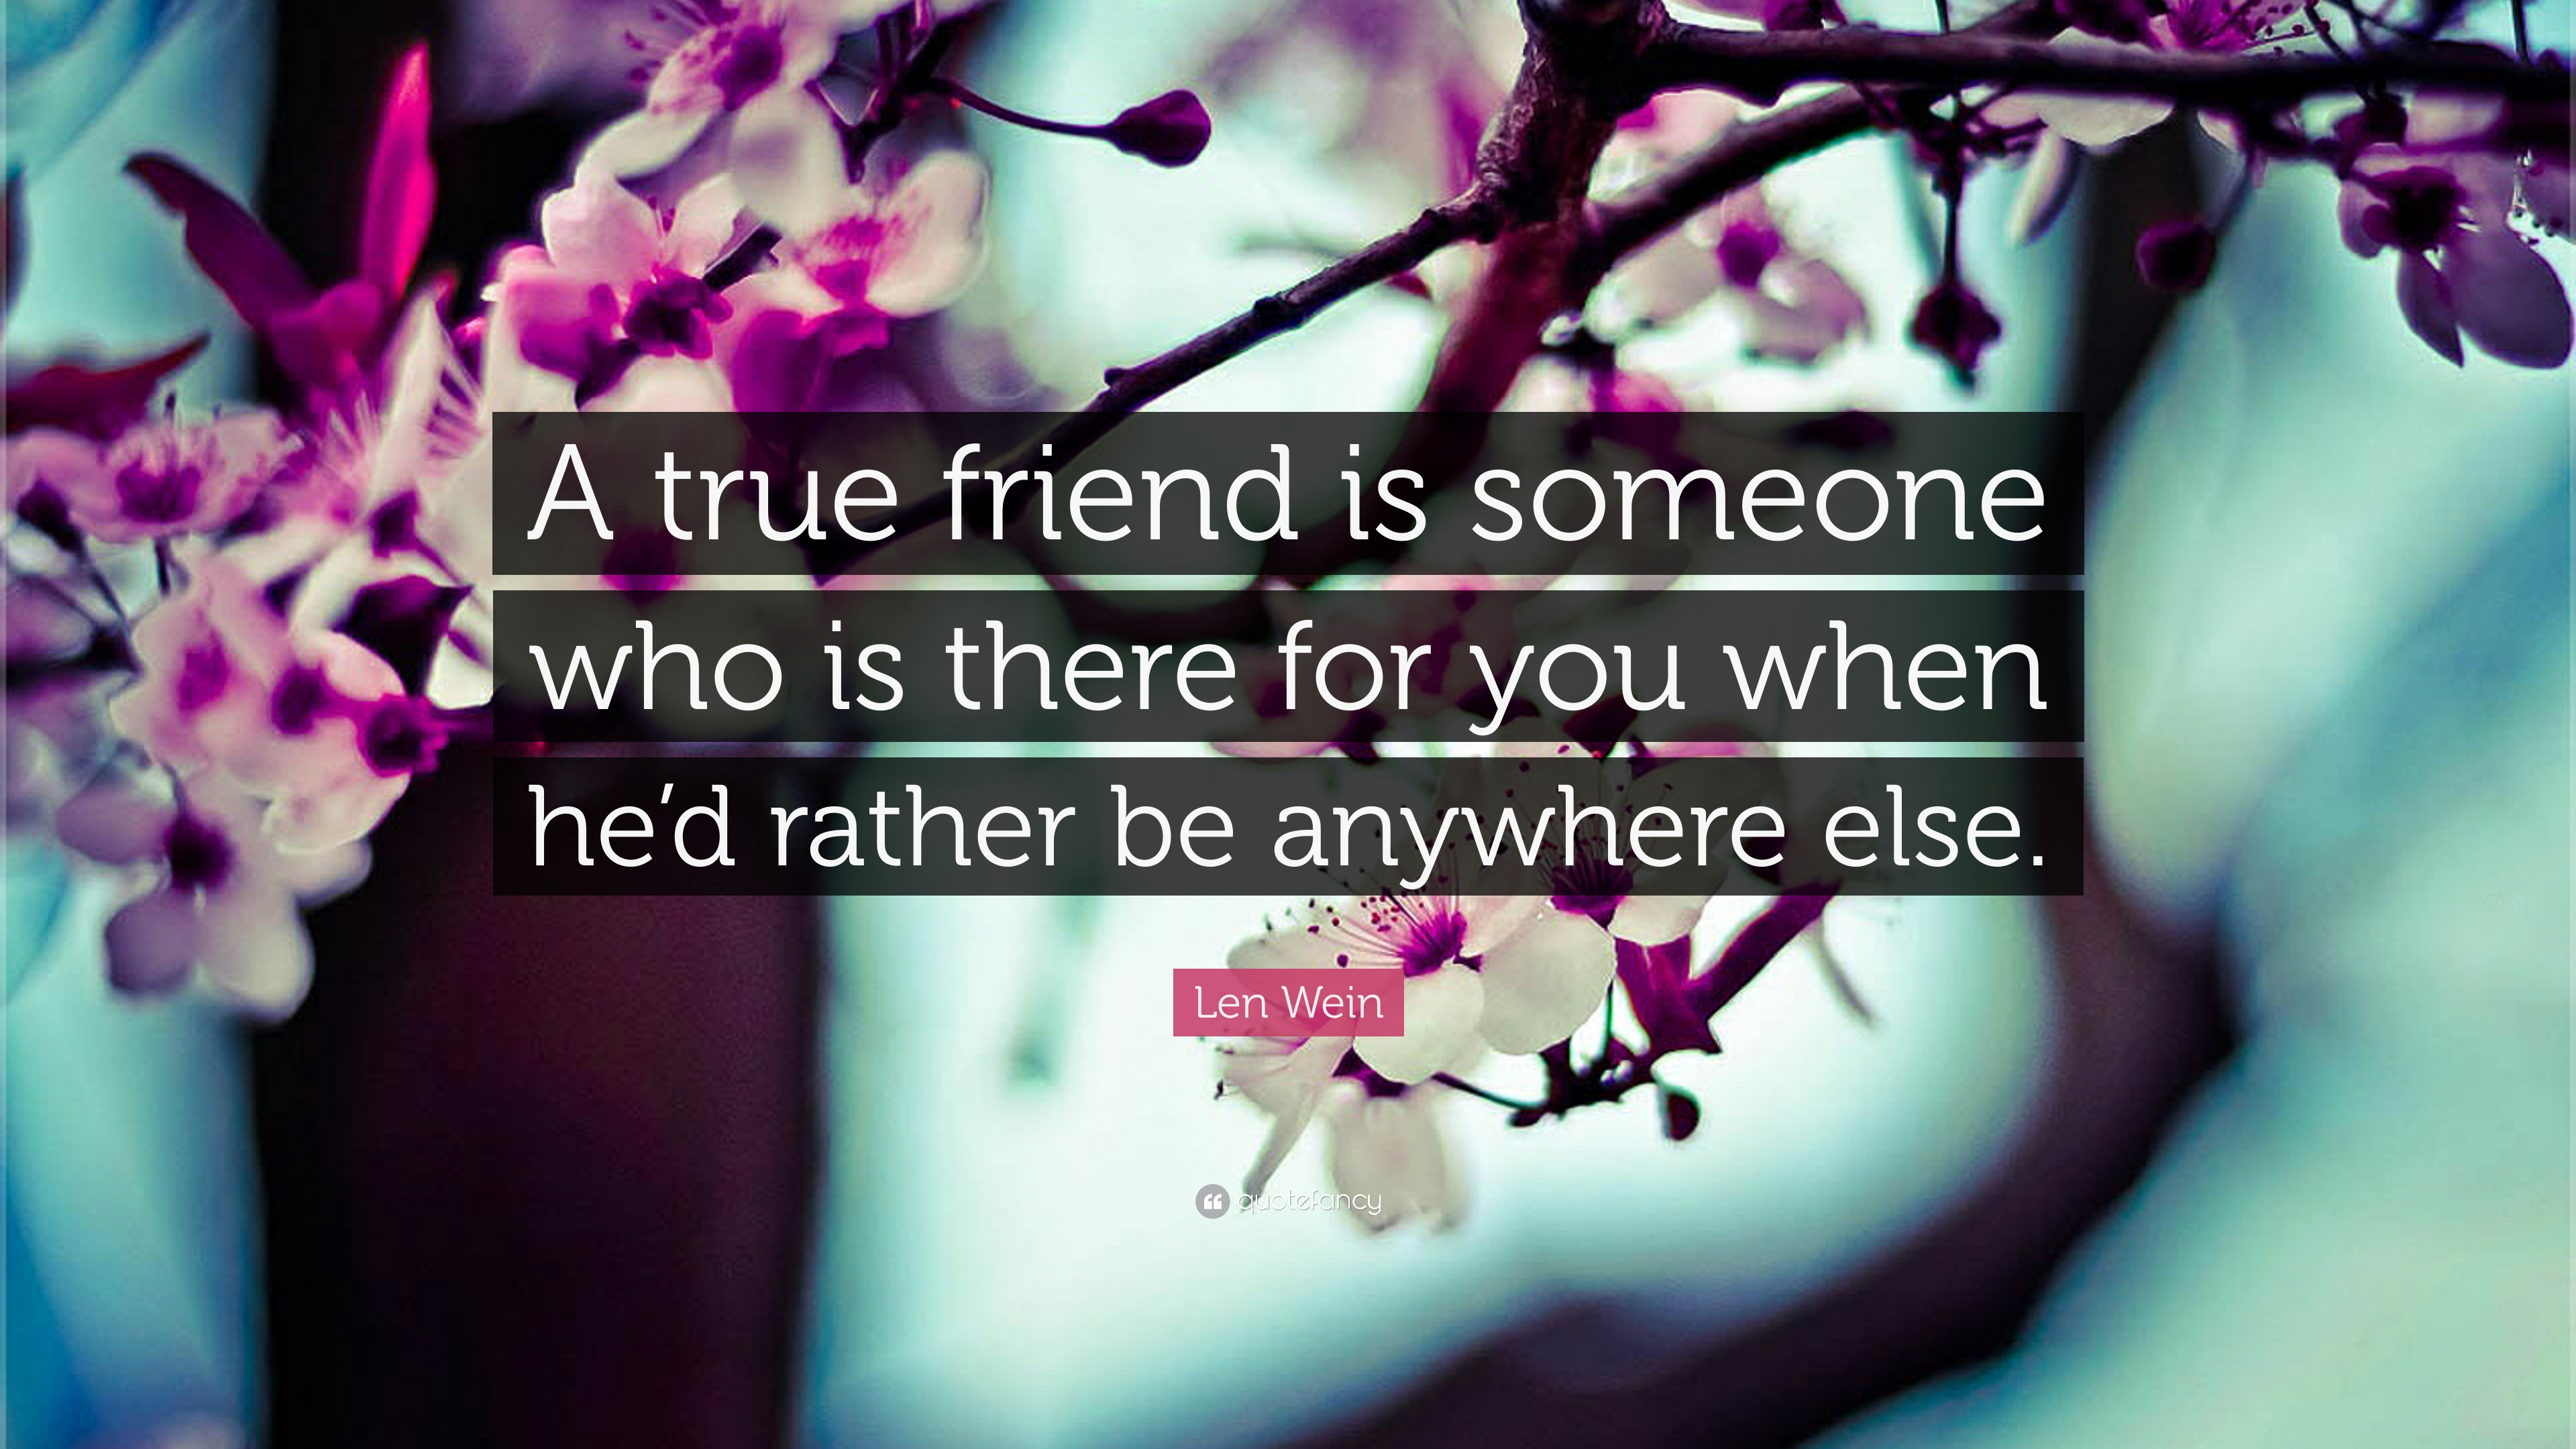 A true friend is someone who is there for you when he'd rather be anywhere else.